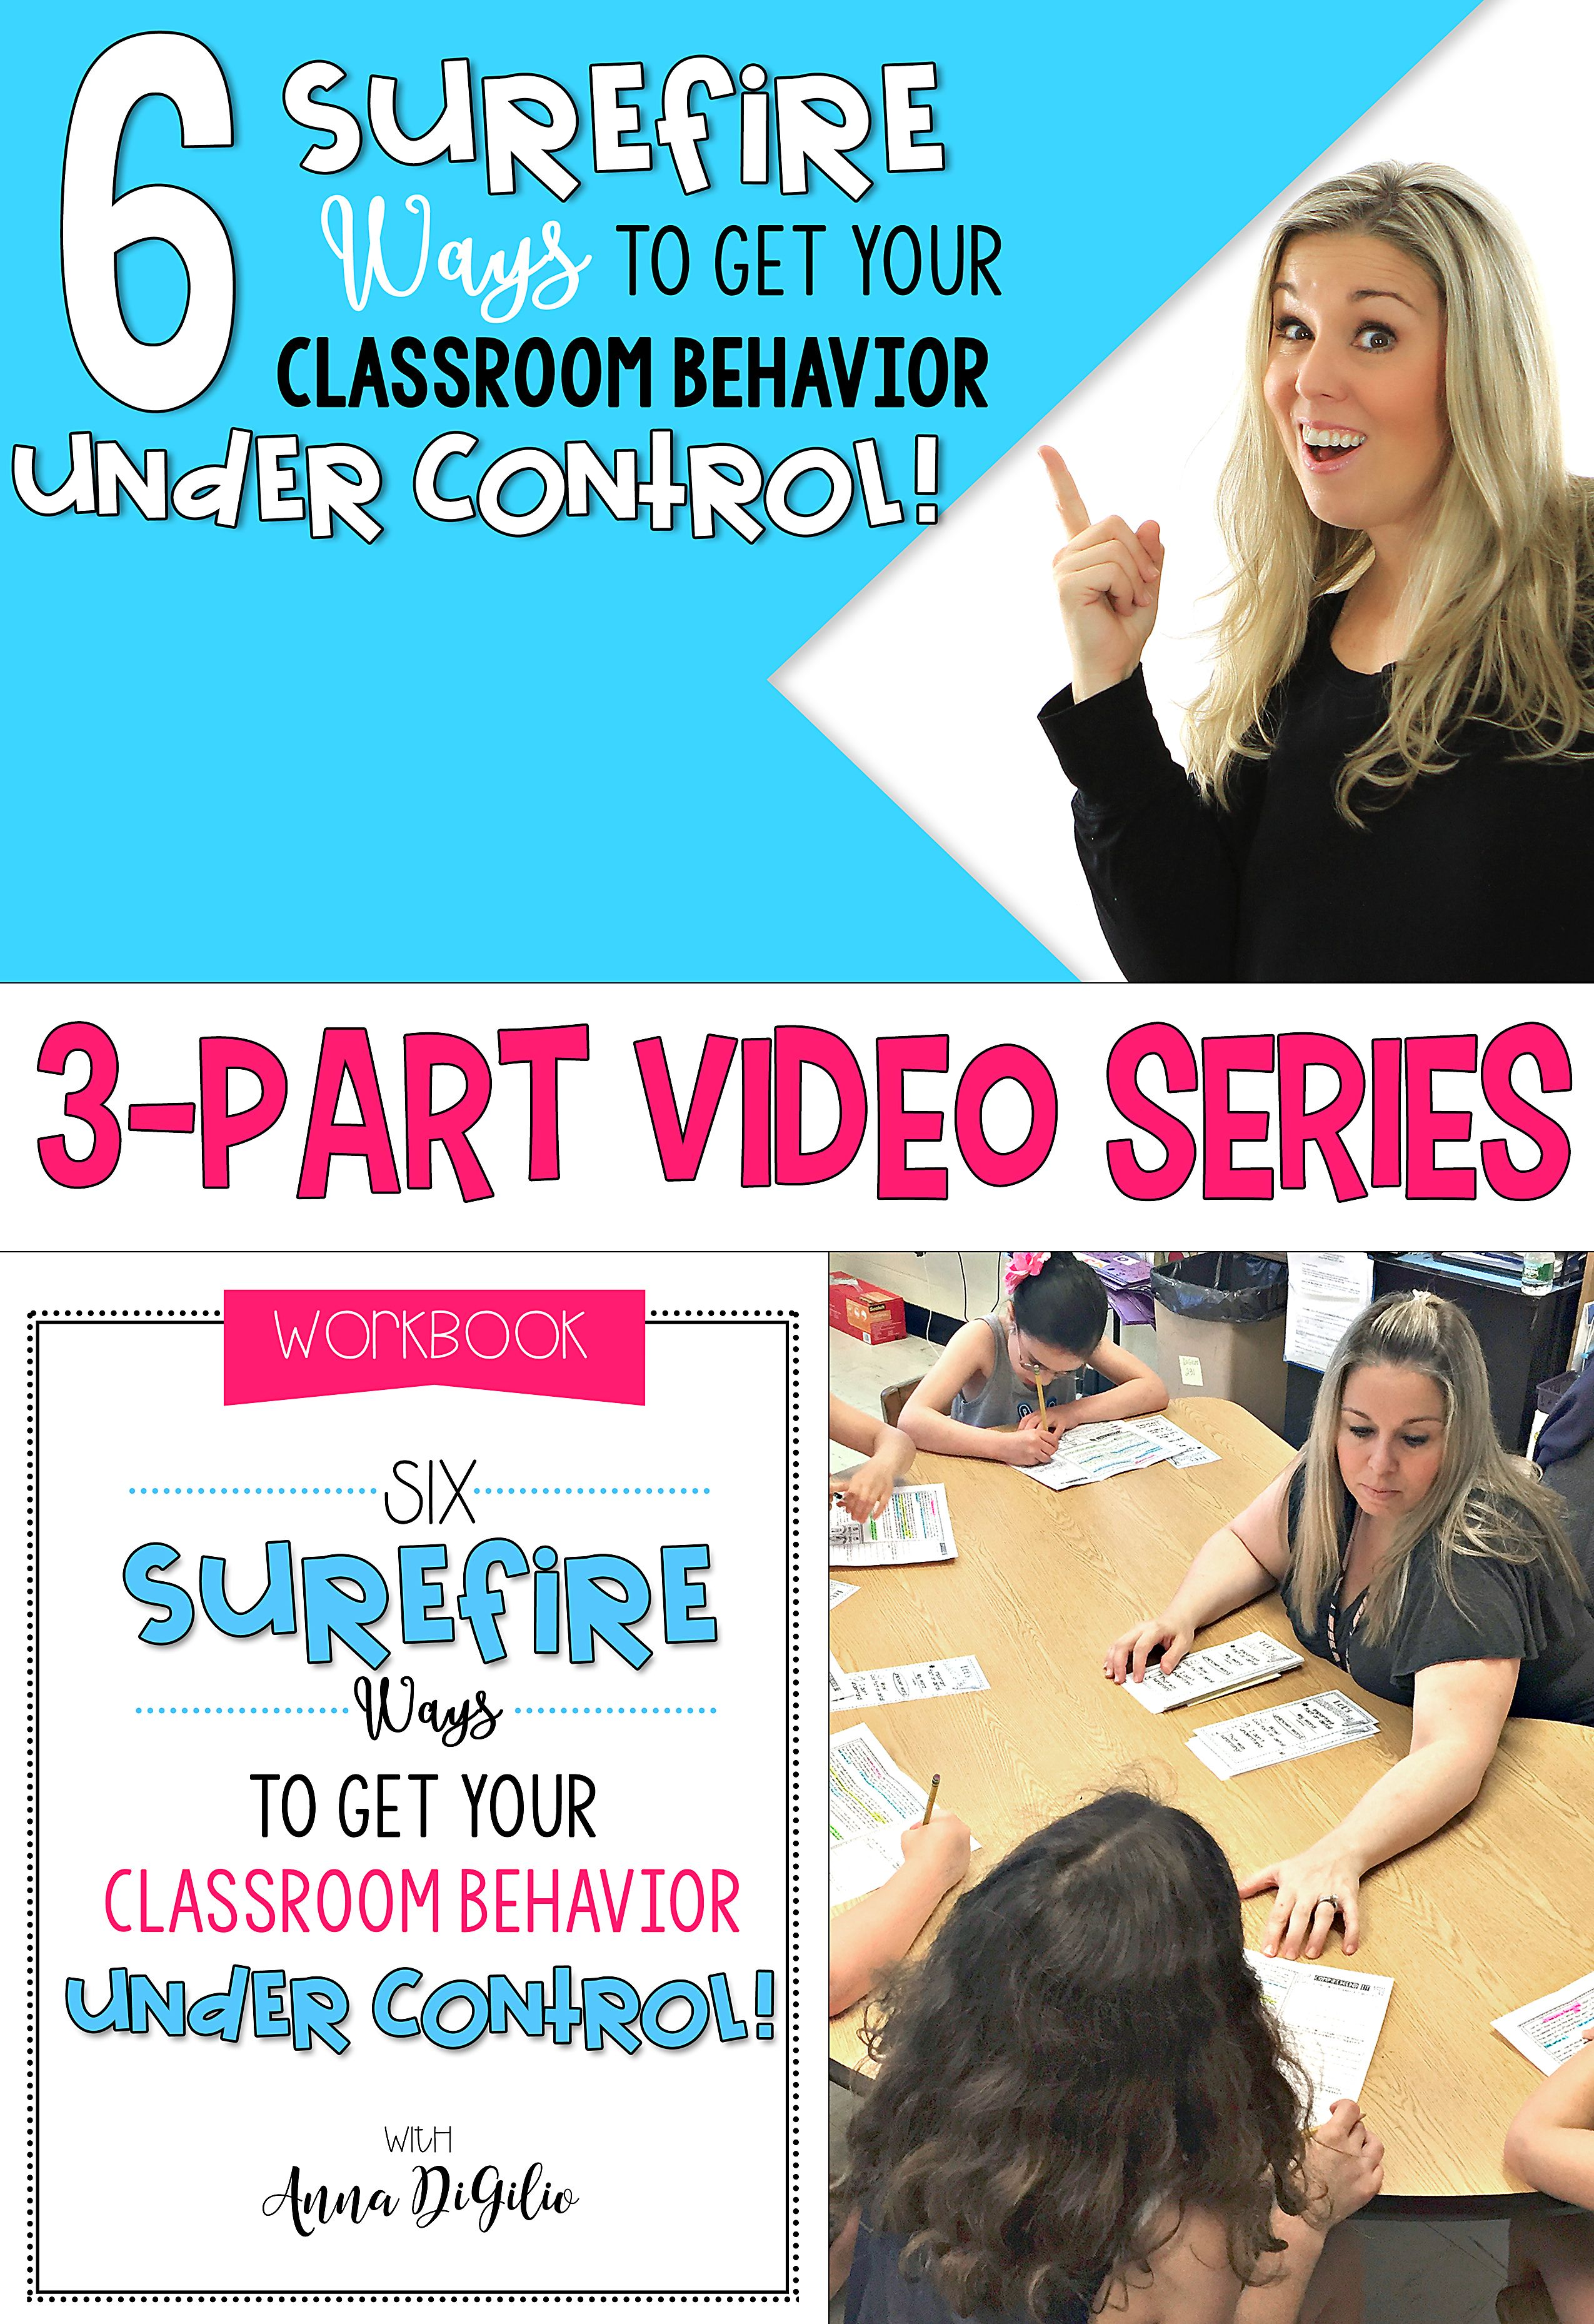 Join Anna for a 3-Part FREE Video Series on How to go From Stressed to Streamlined Teaching! Click here to DOWNLOAD your FREE workbook and watch Video #2 all about my 6 Surefire Ways to Get Your Classroom Behavior Under Control!